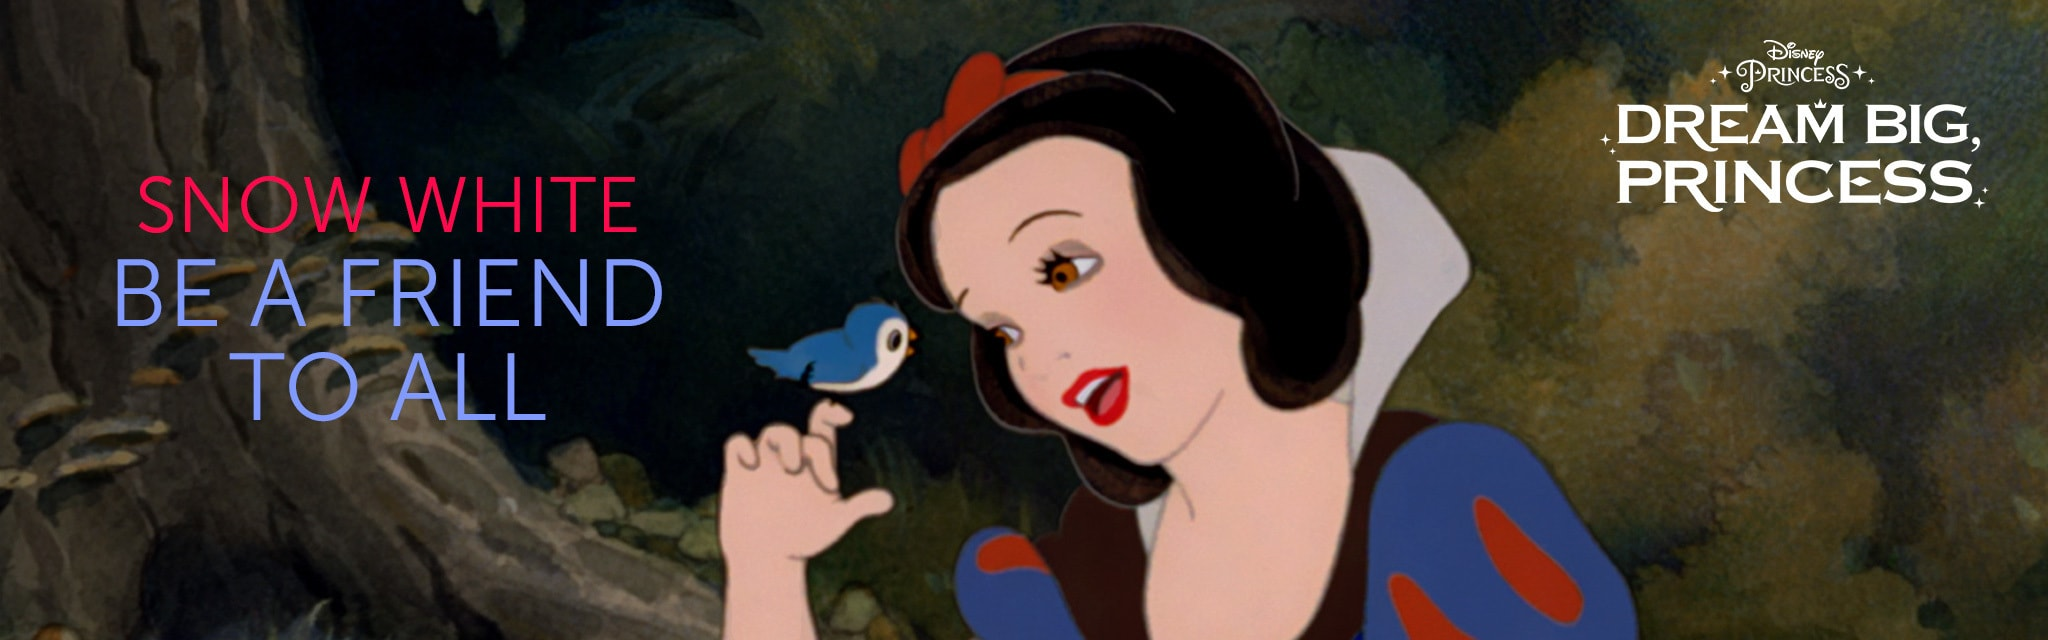 Snow White - Be A Friend To All